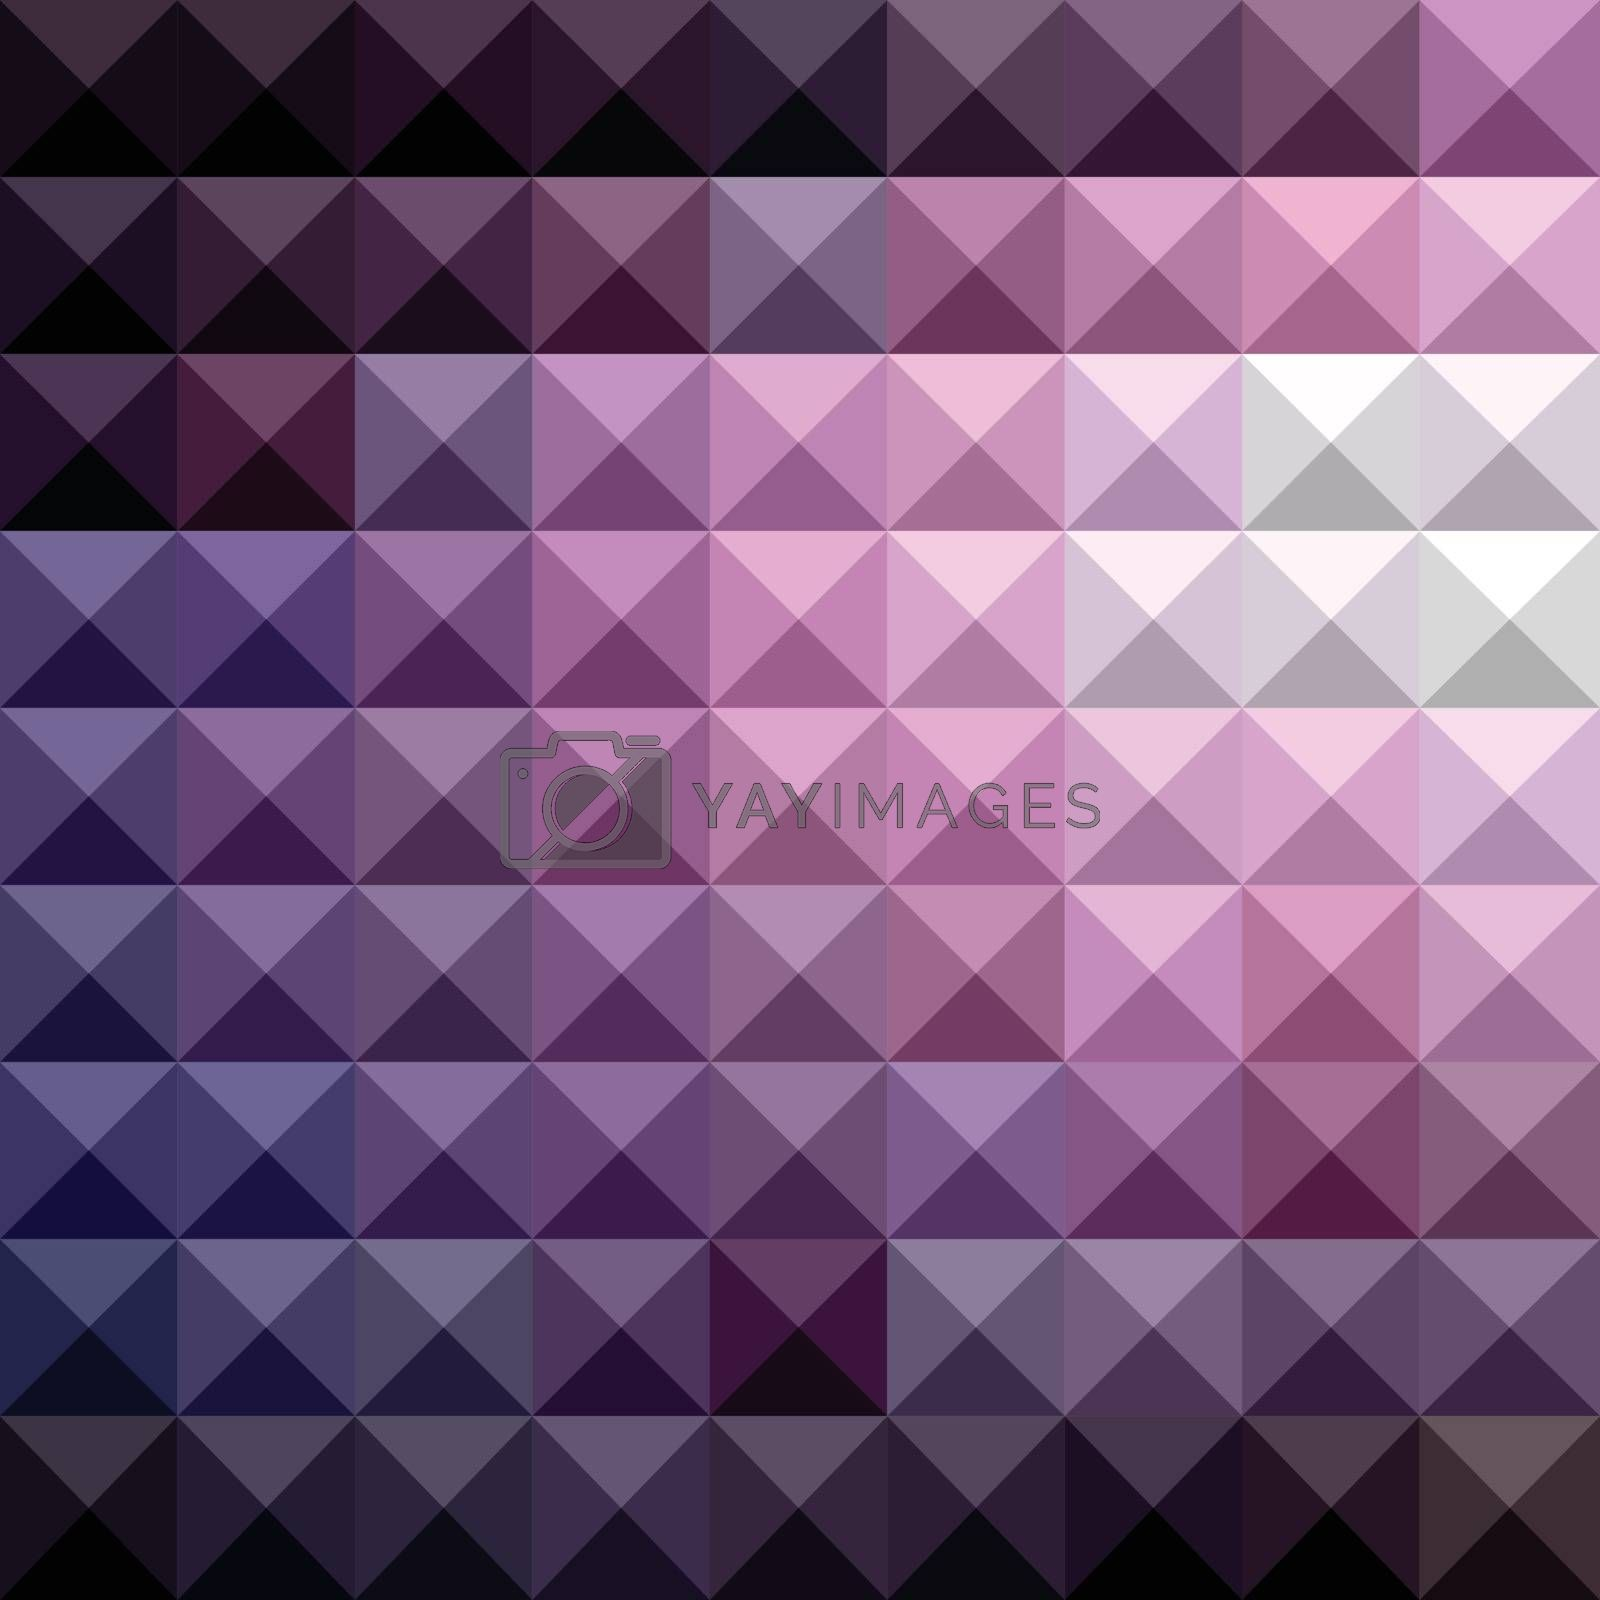 Low polygon style illustration of a russian violet abstract geometric background.